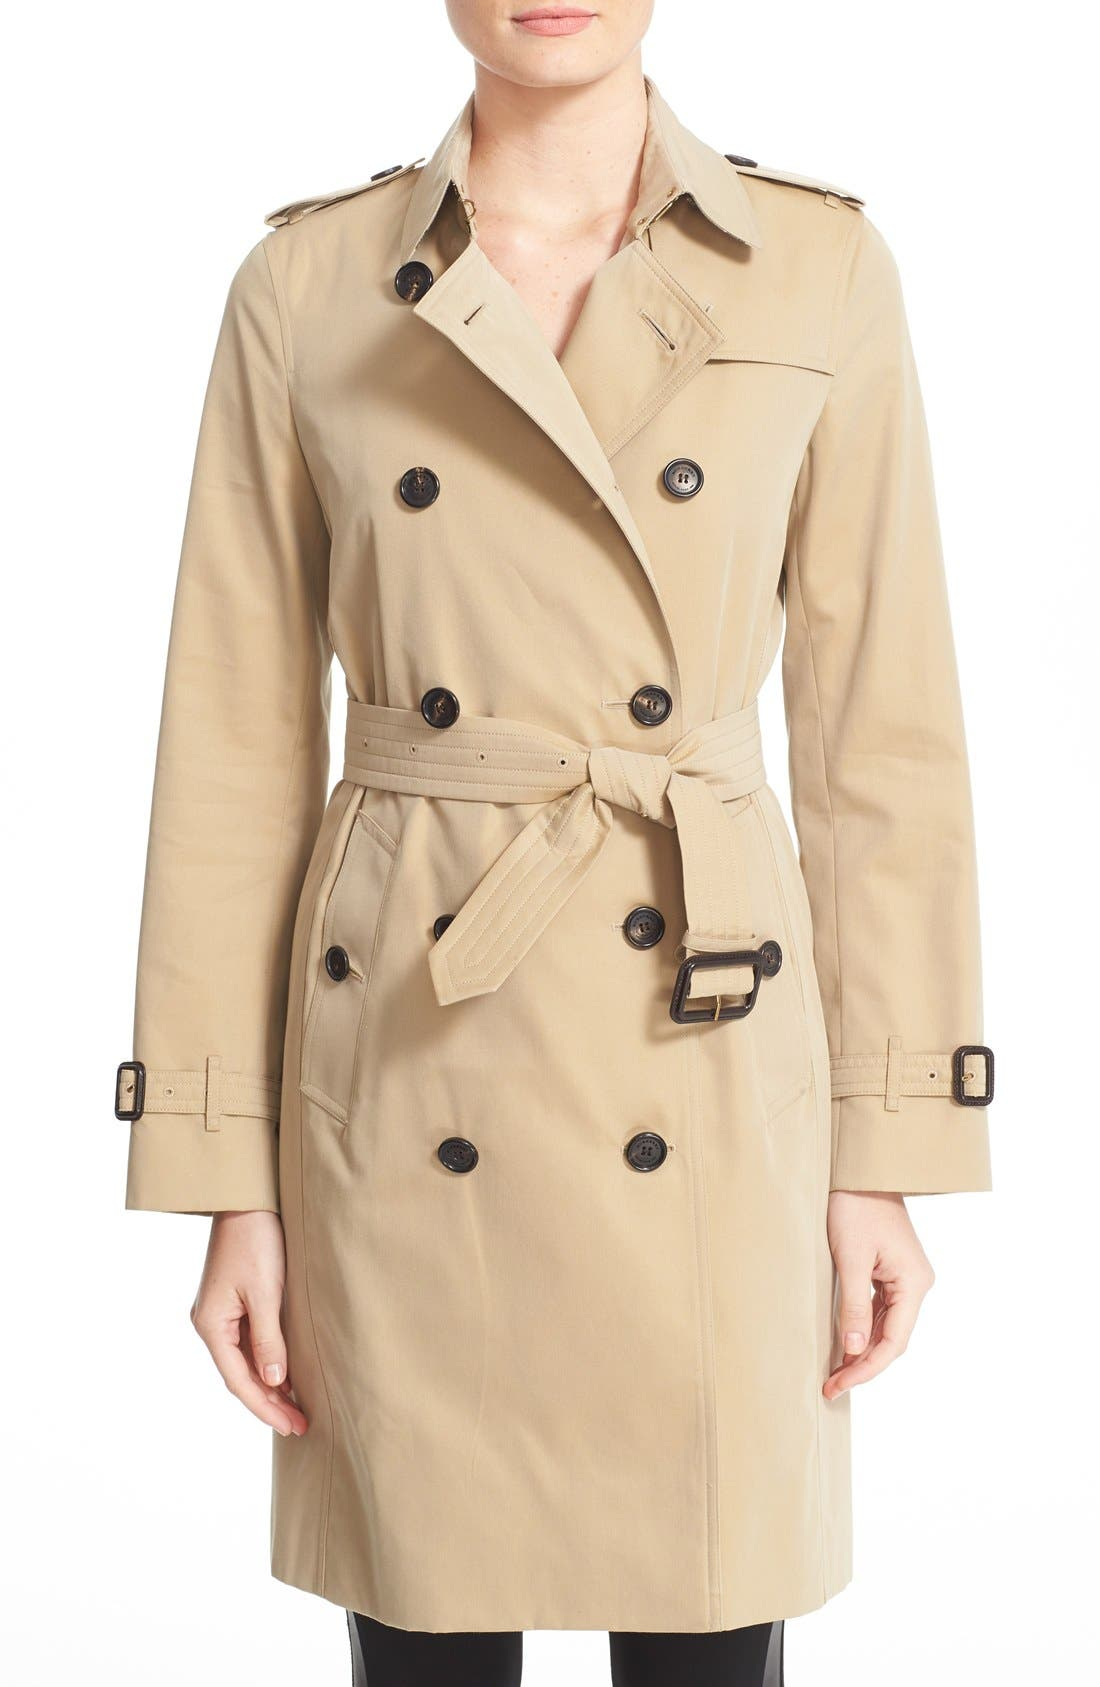 Rain Coats for Women | Nordstrom | Nordstrom